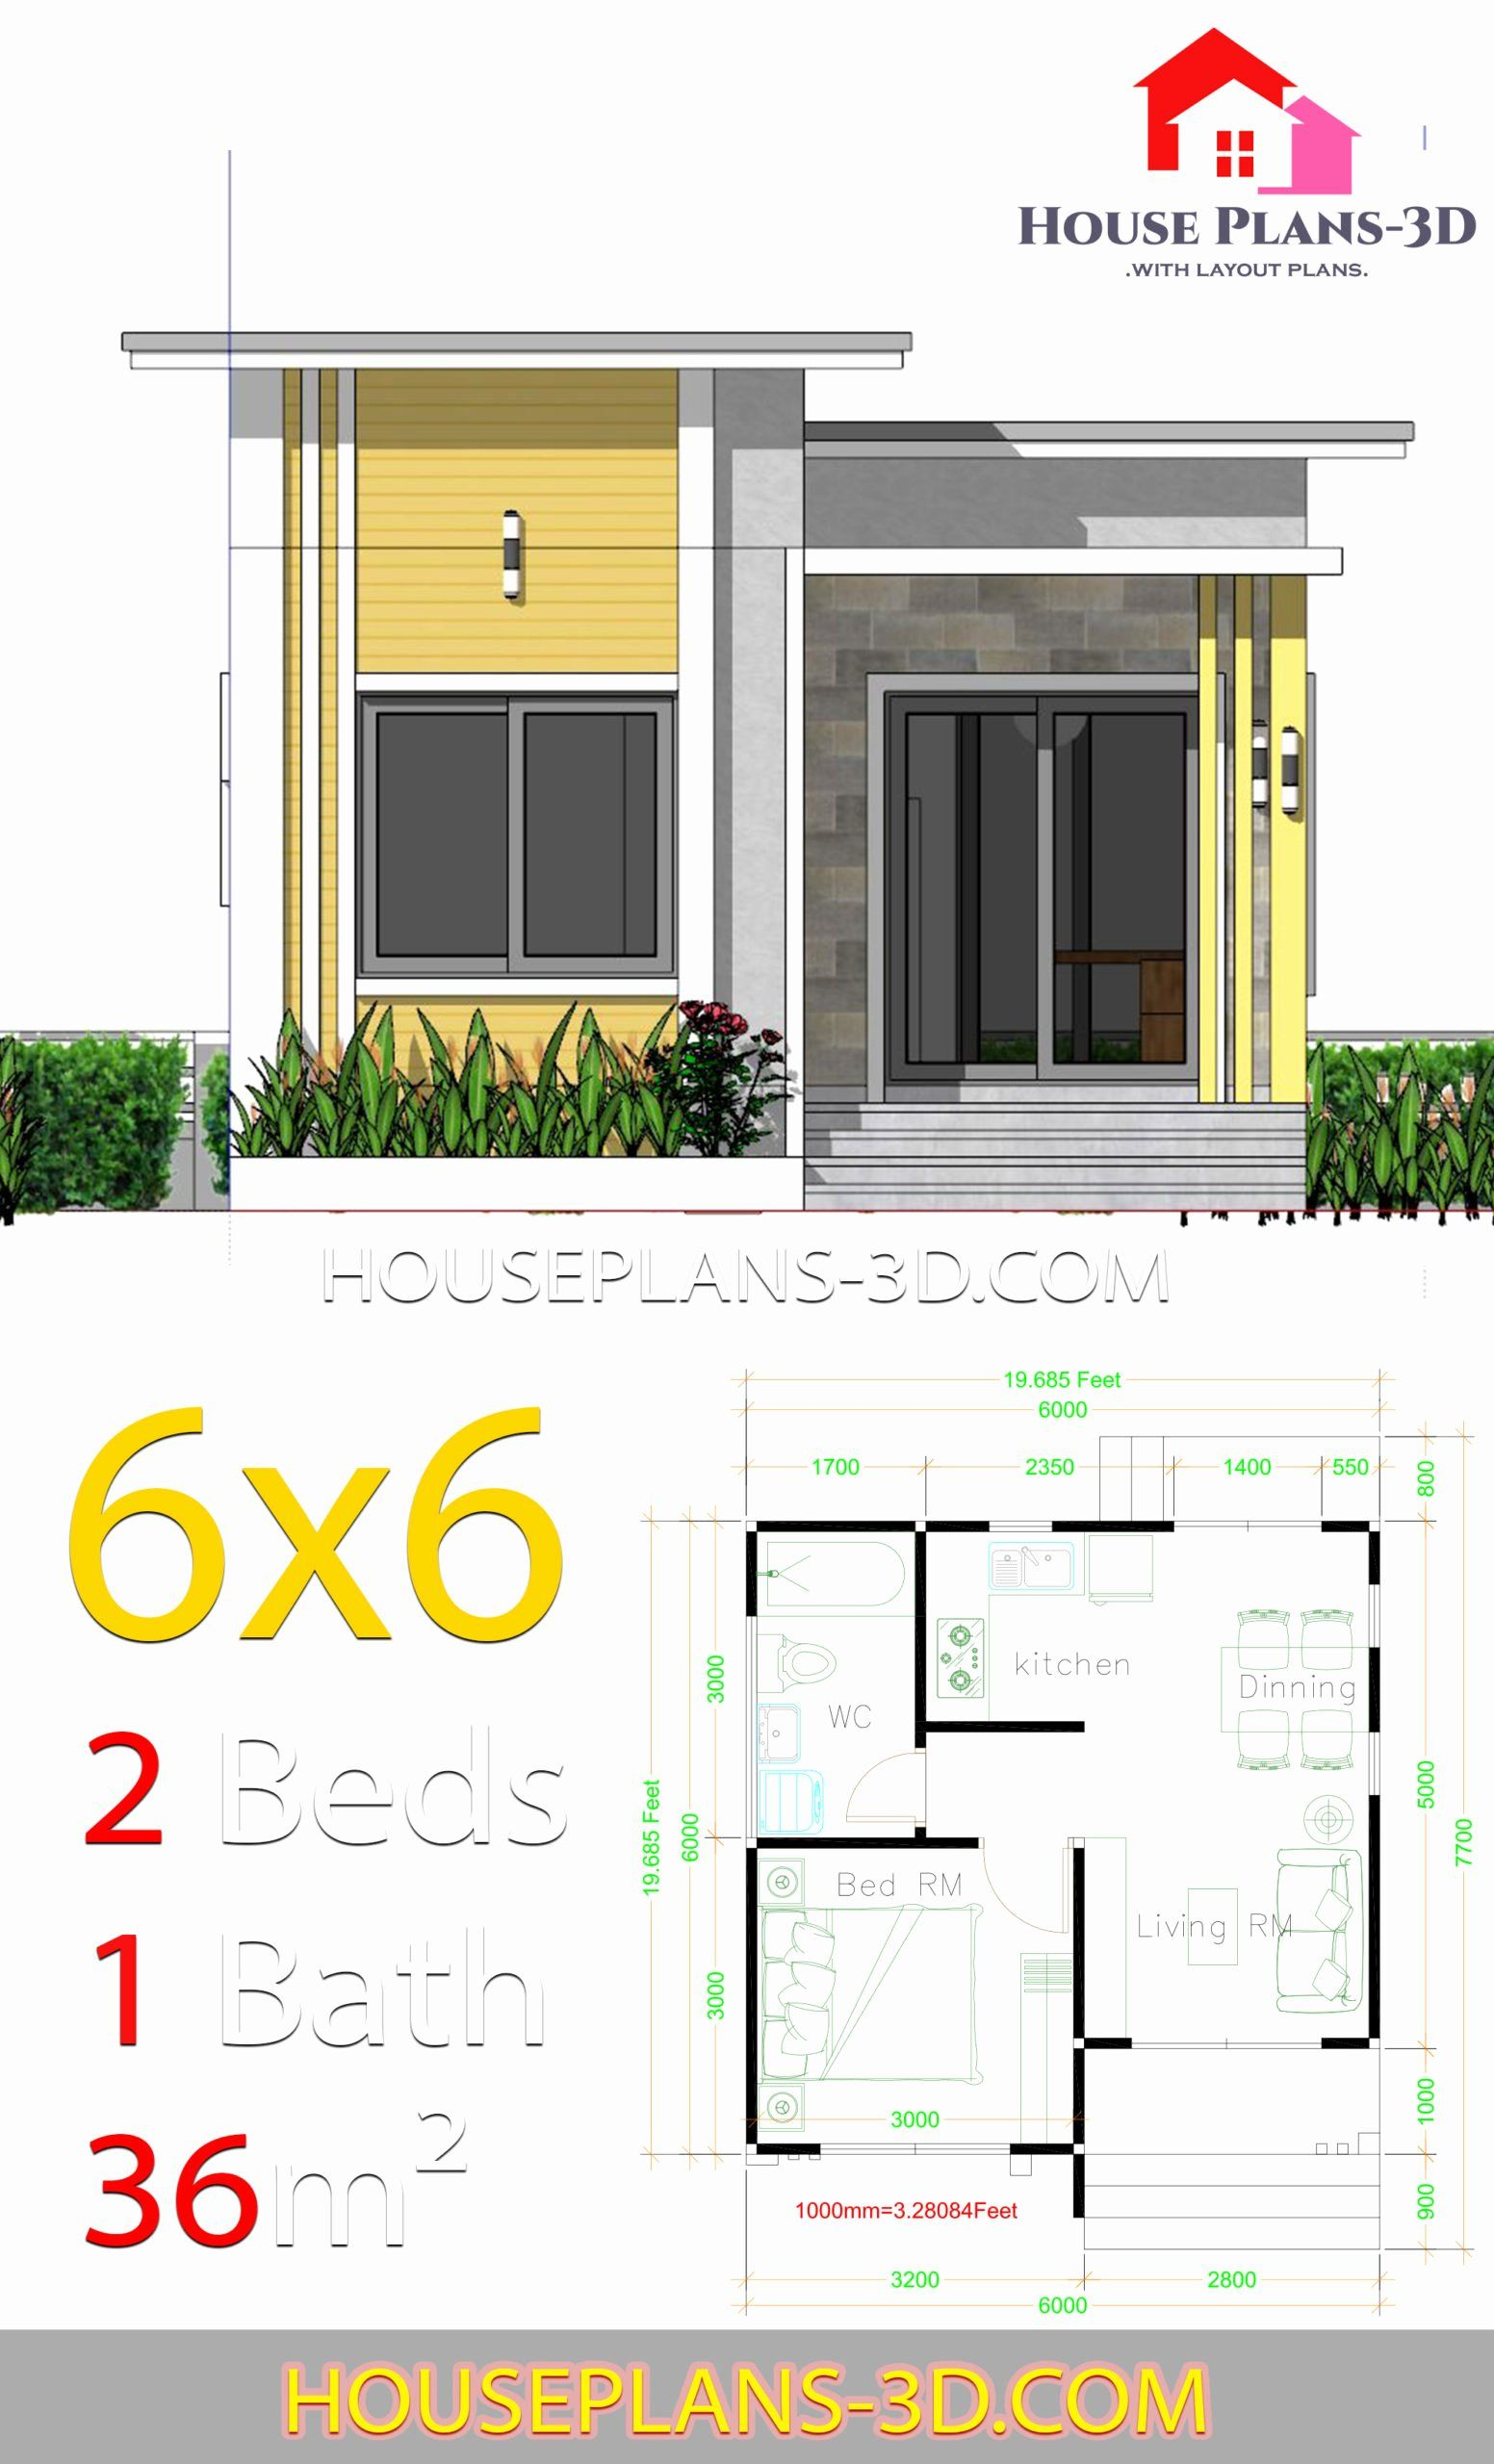 6 X 6 Bathroom Plans Elegant House Plans 6 6 With E Bedrooms Flat Roof House Plans 3d Tanjung Best Flat Roof House House Plans Unique House Plans